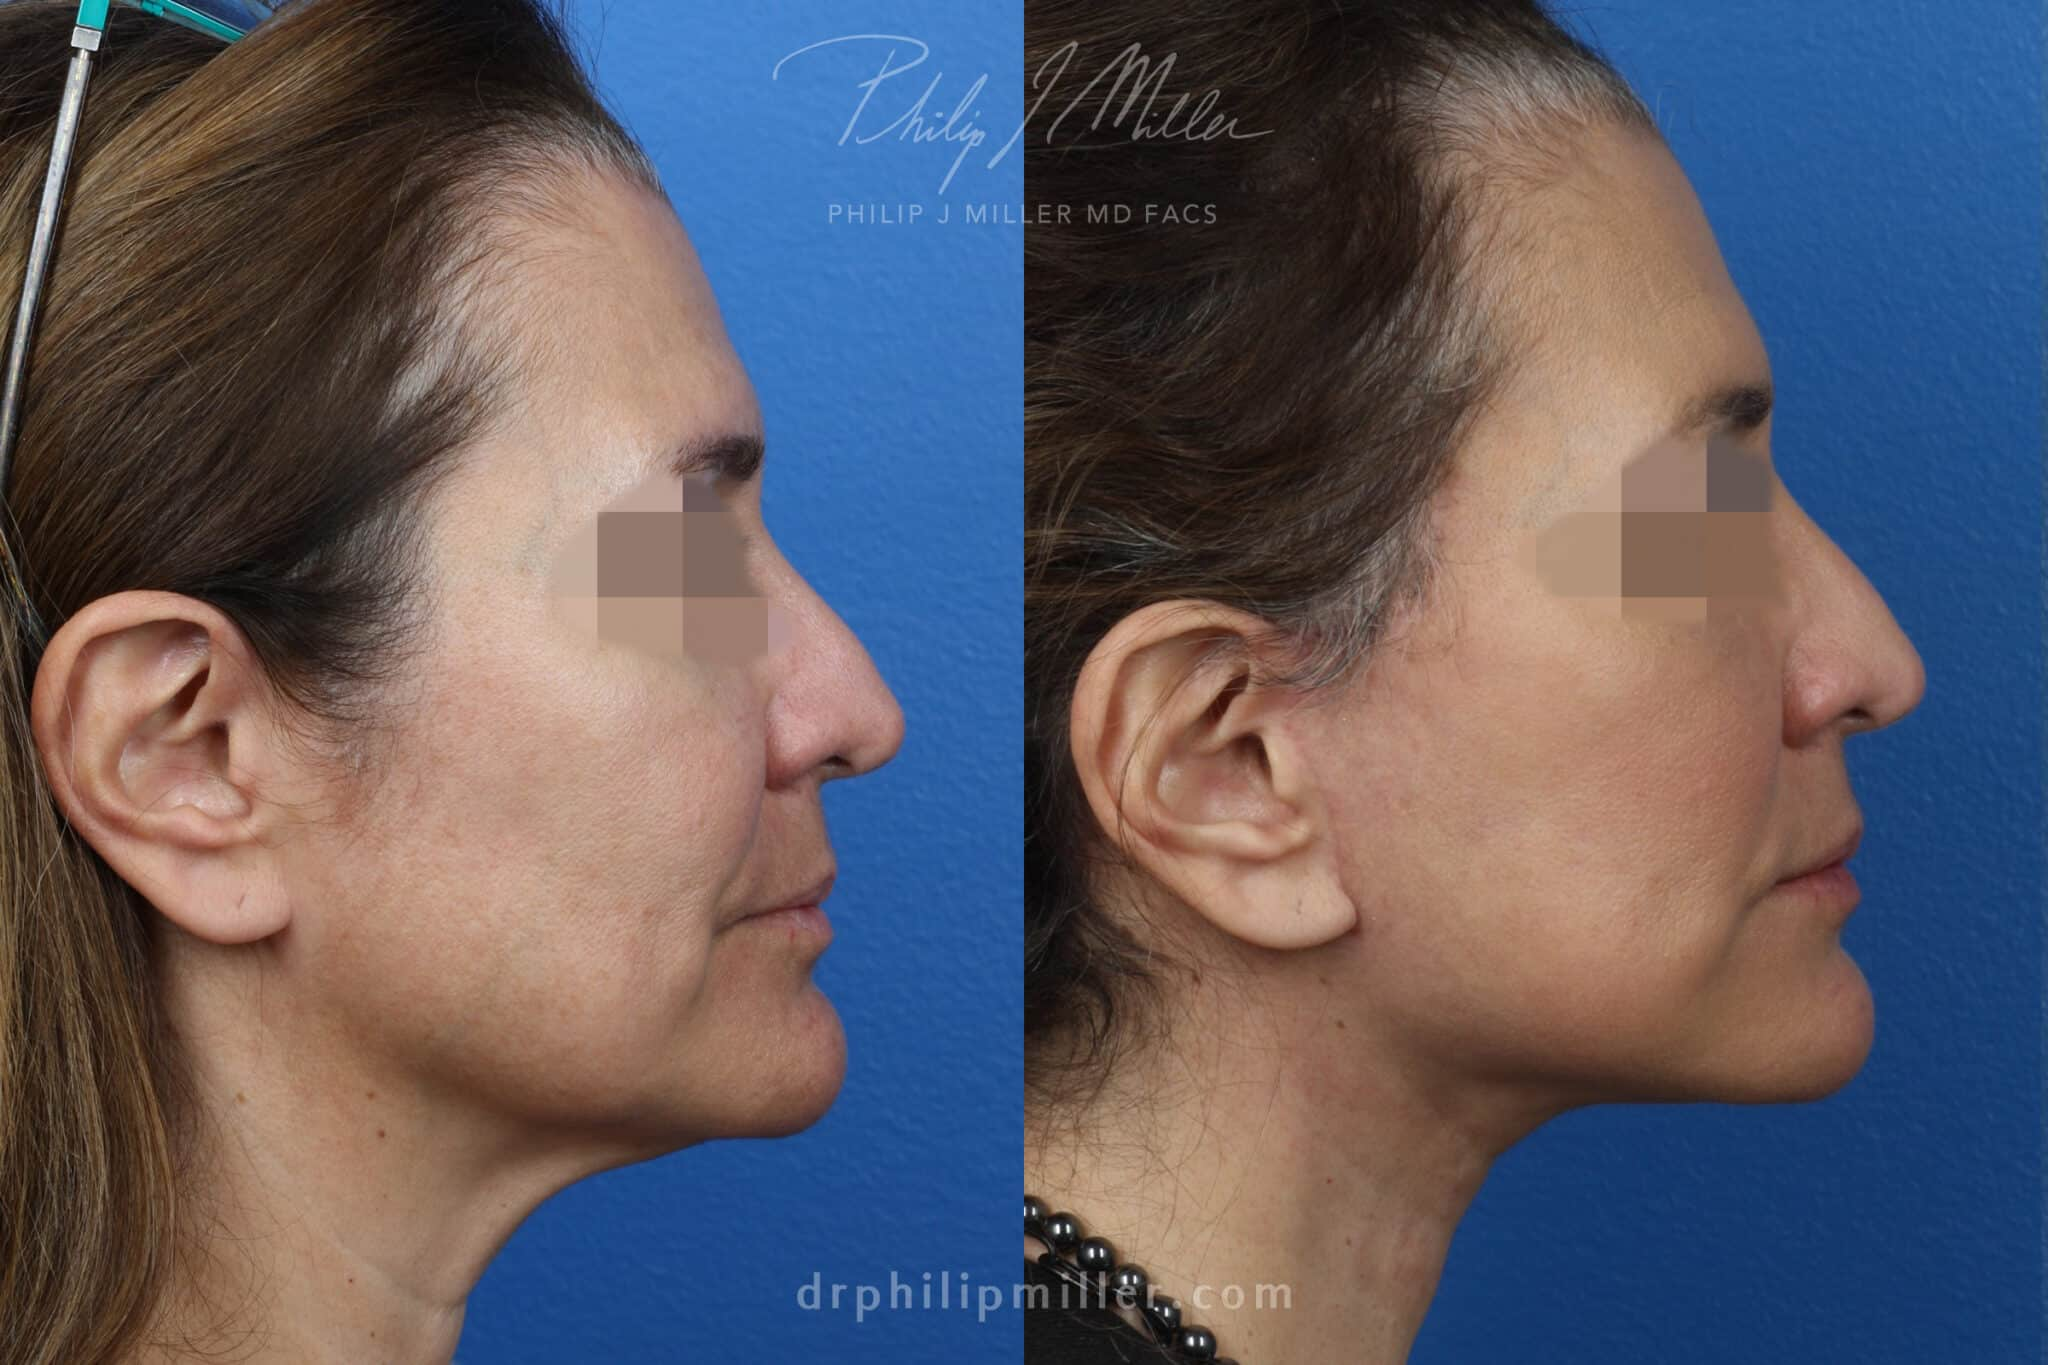 NatraNeck and NatraLift to rejuvenate the neck and lower face, 2 months post-op, by Dr. Miller